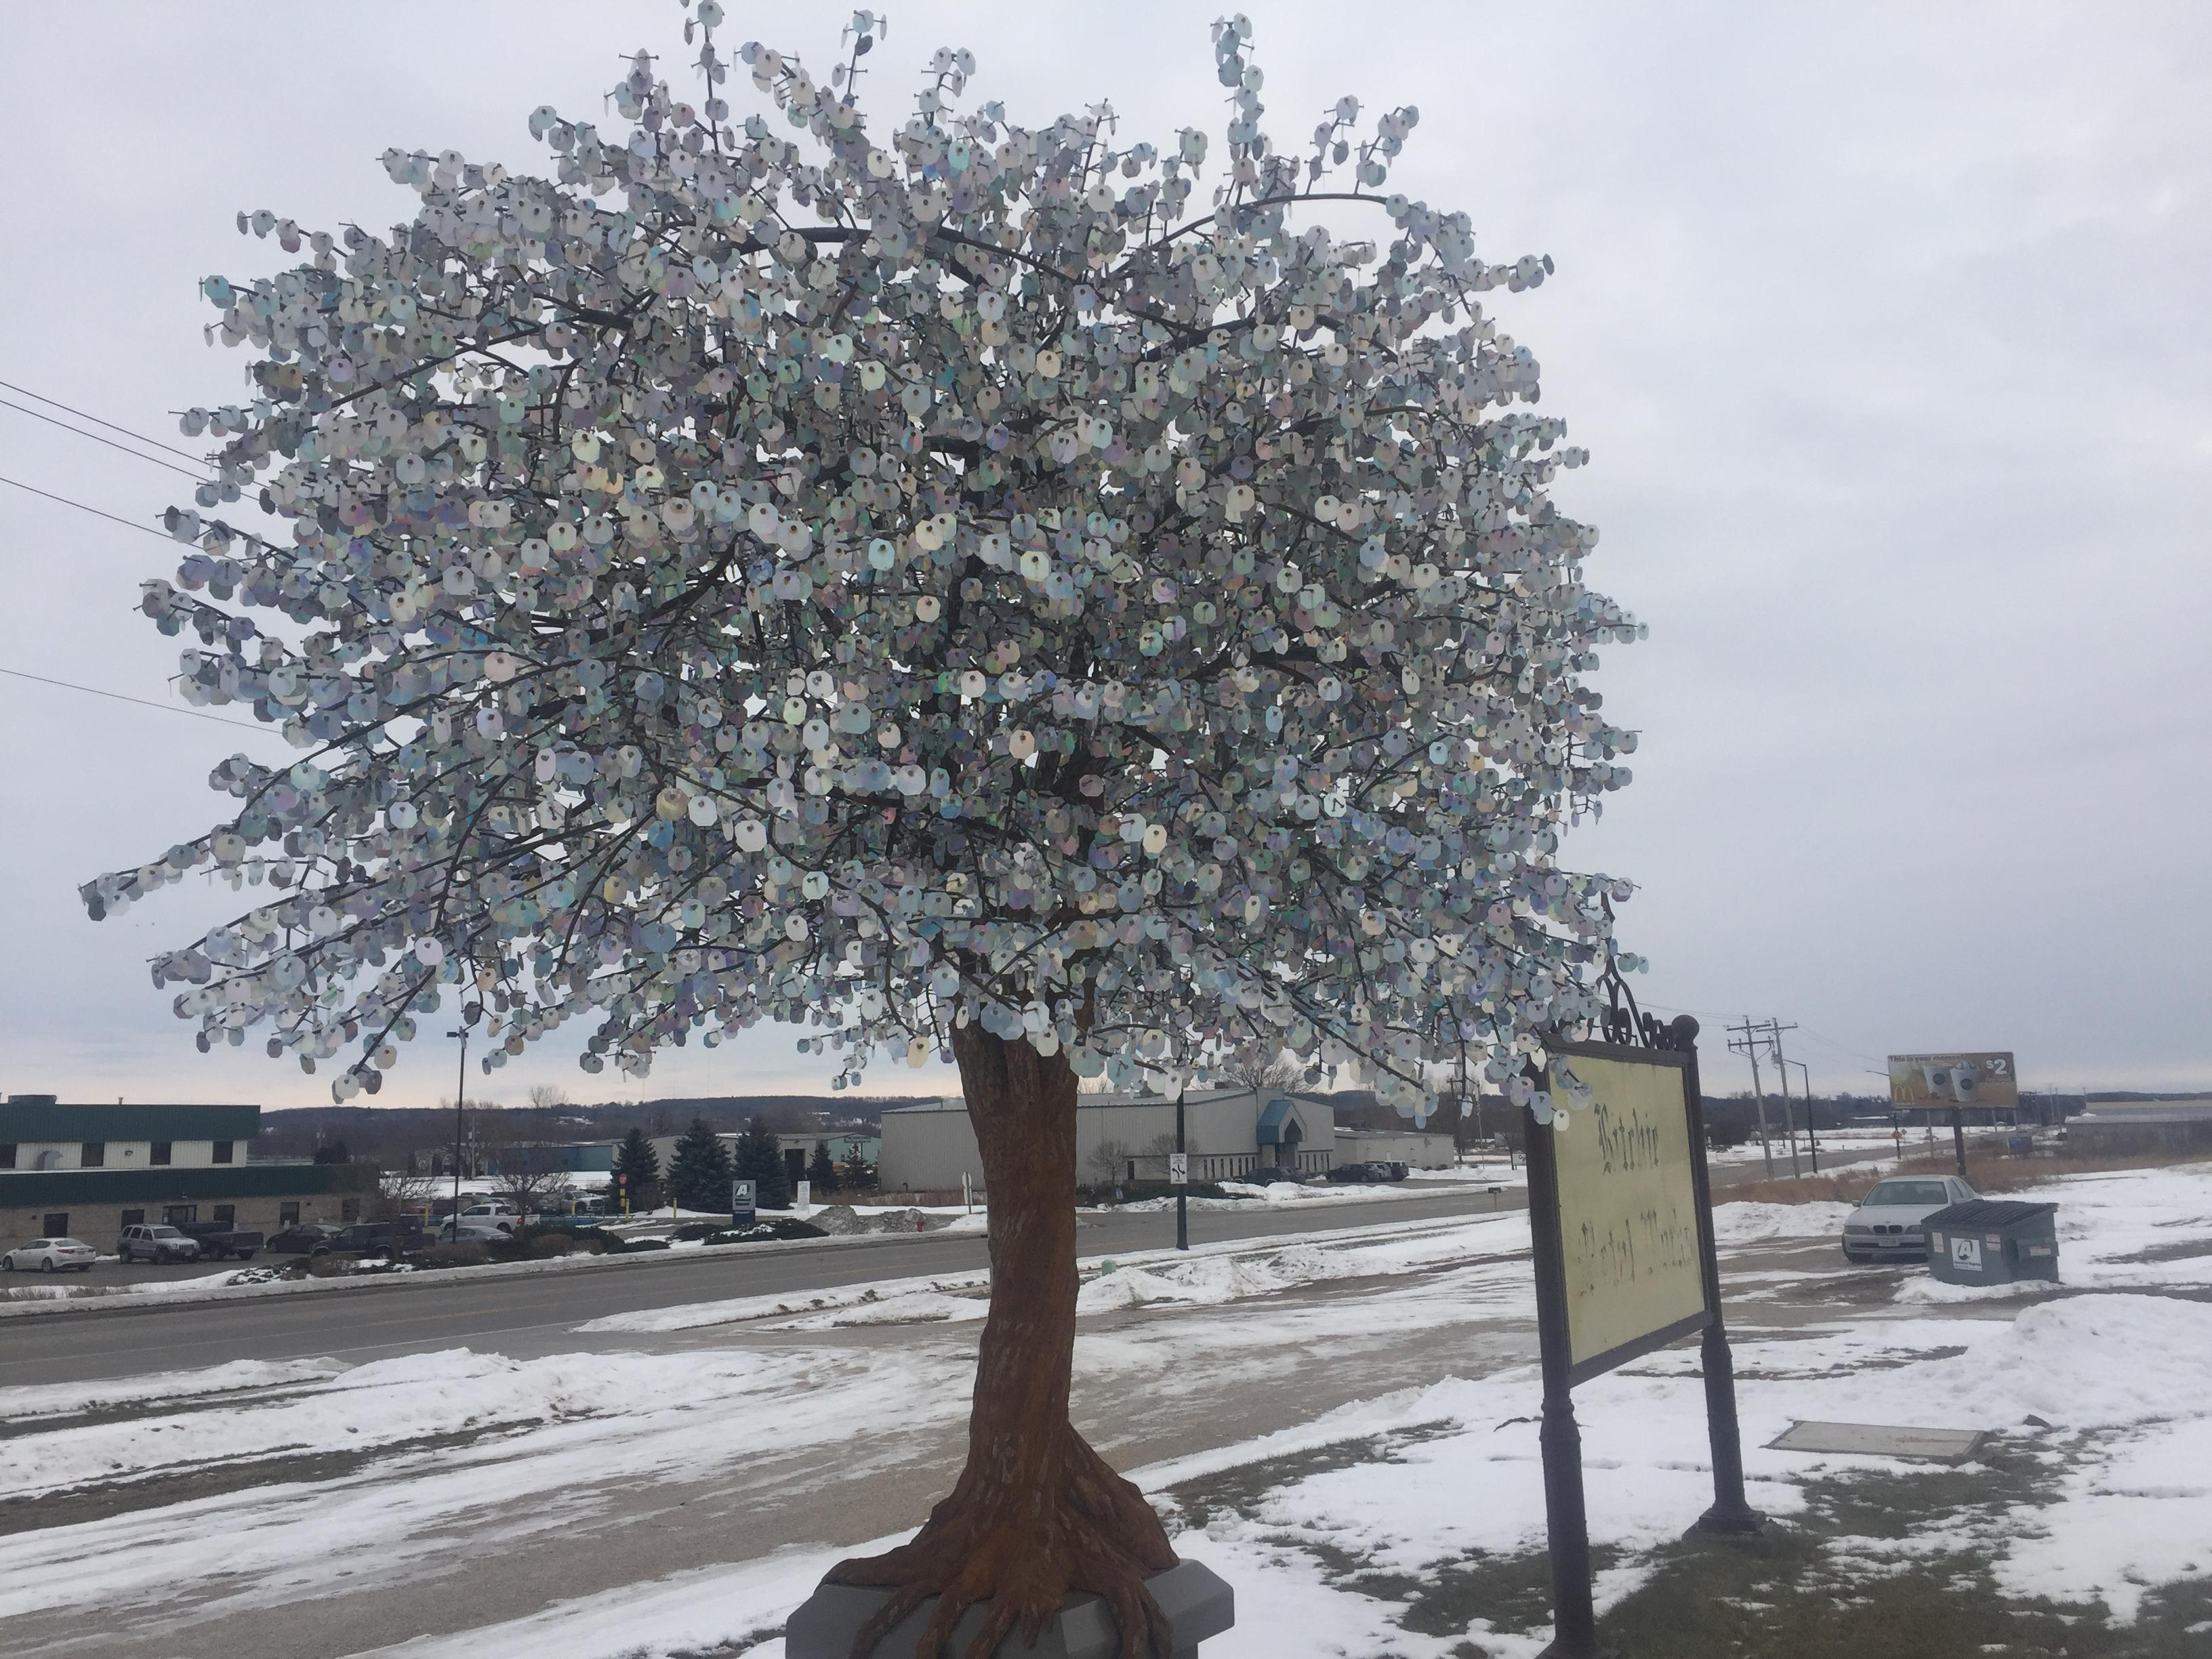 A picture of the tree made of steel during the day, December 20, 2017. (WLUK){&amp;nbsp;}<p></p>